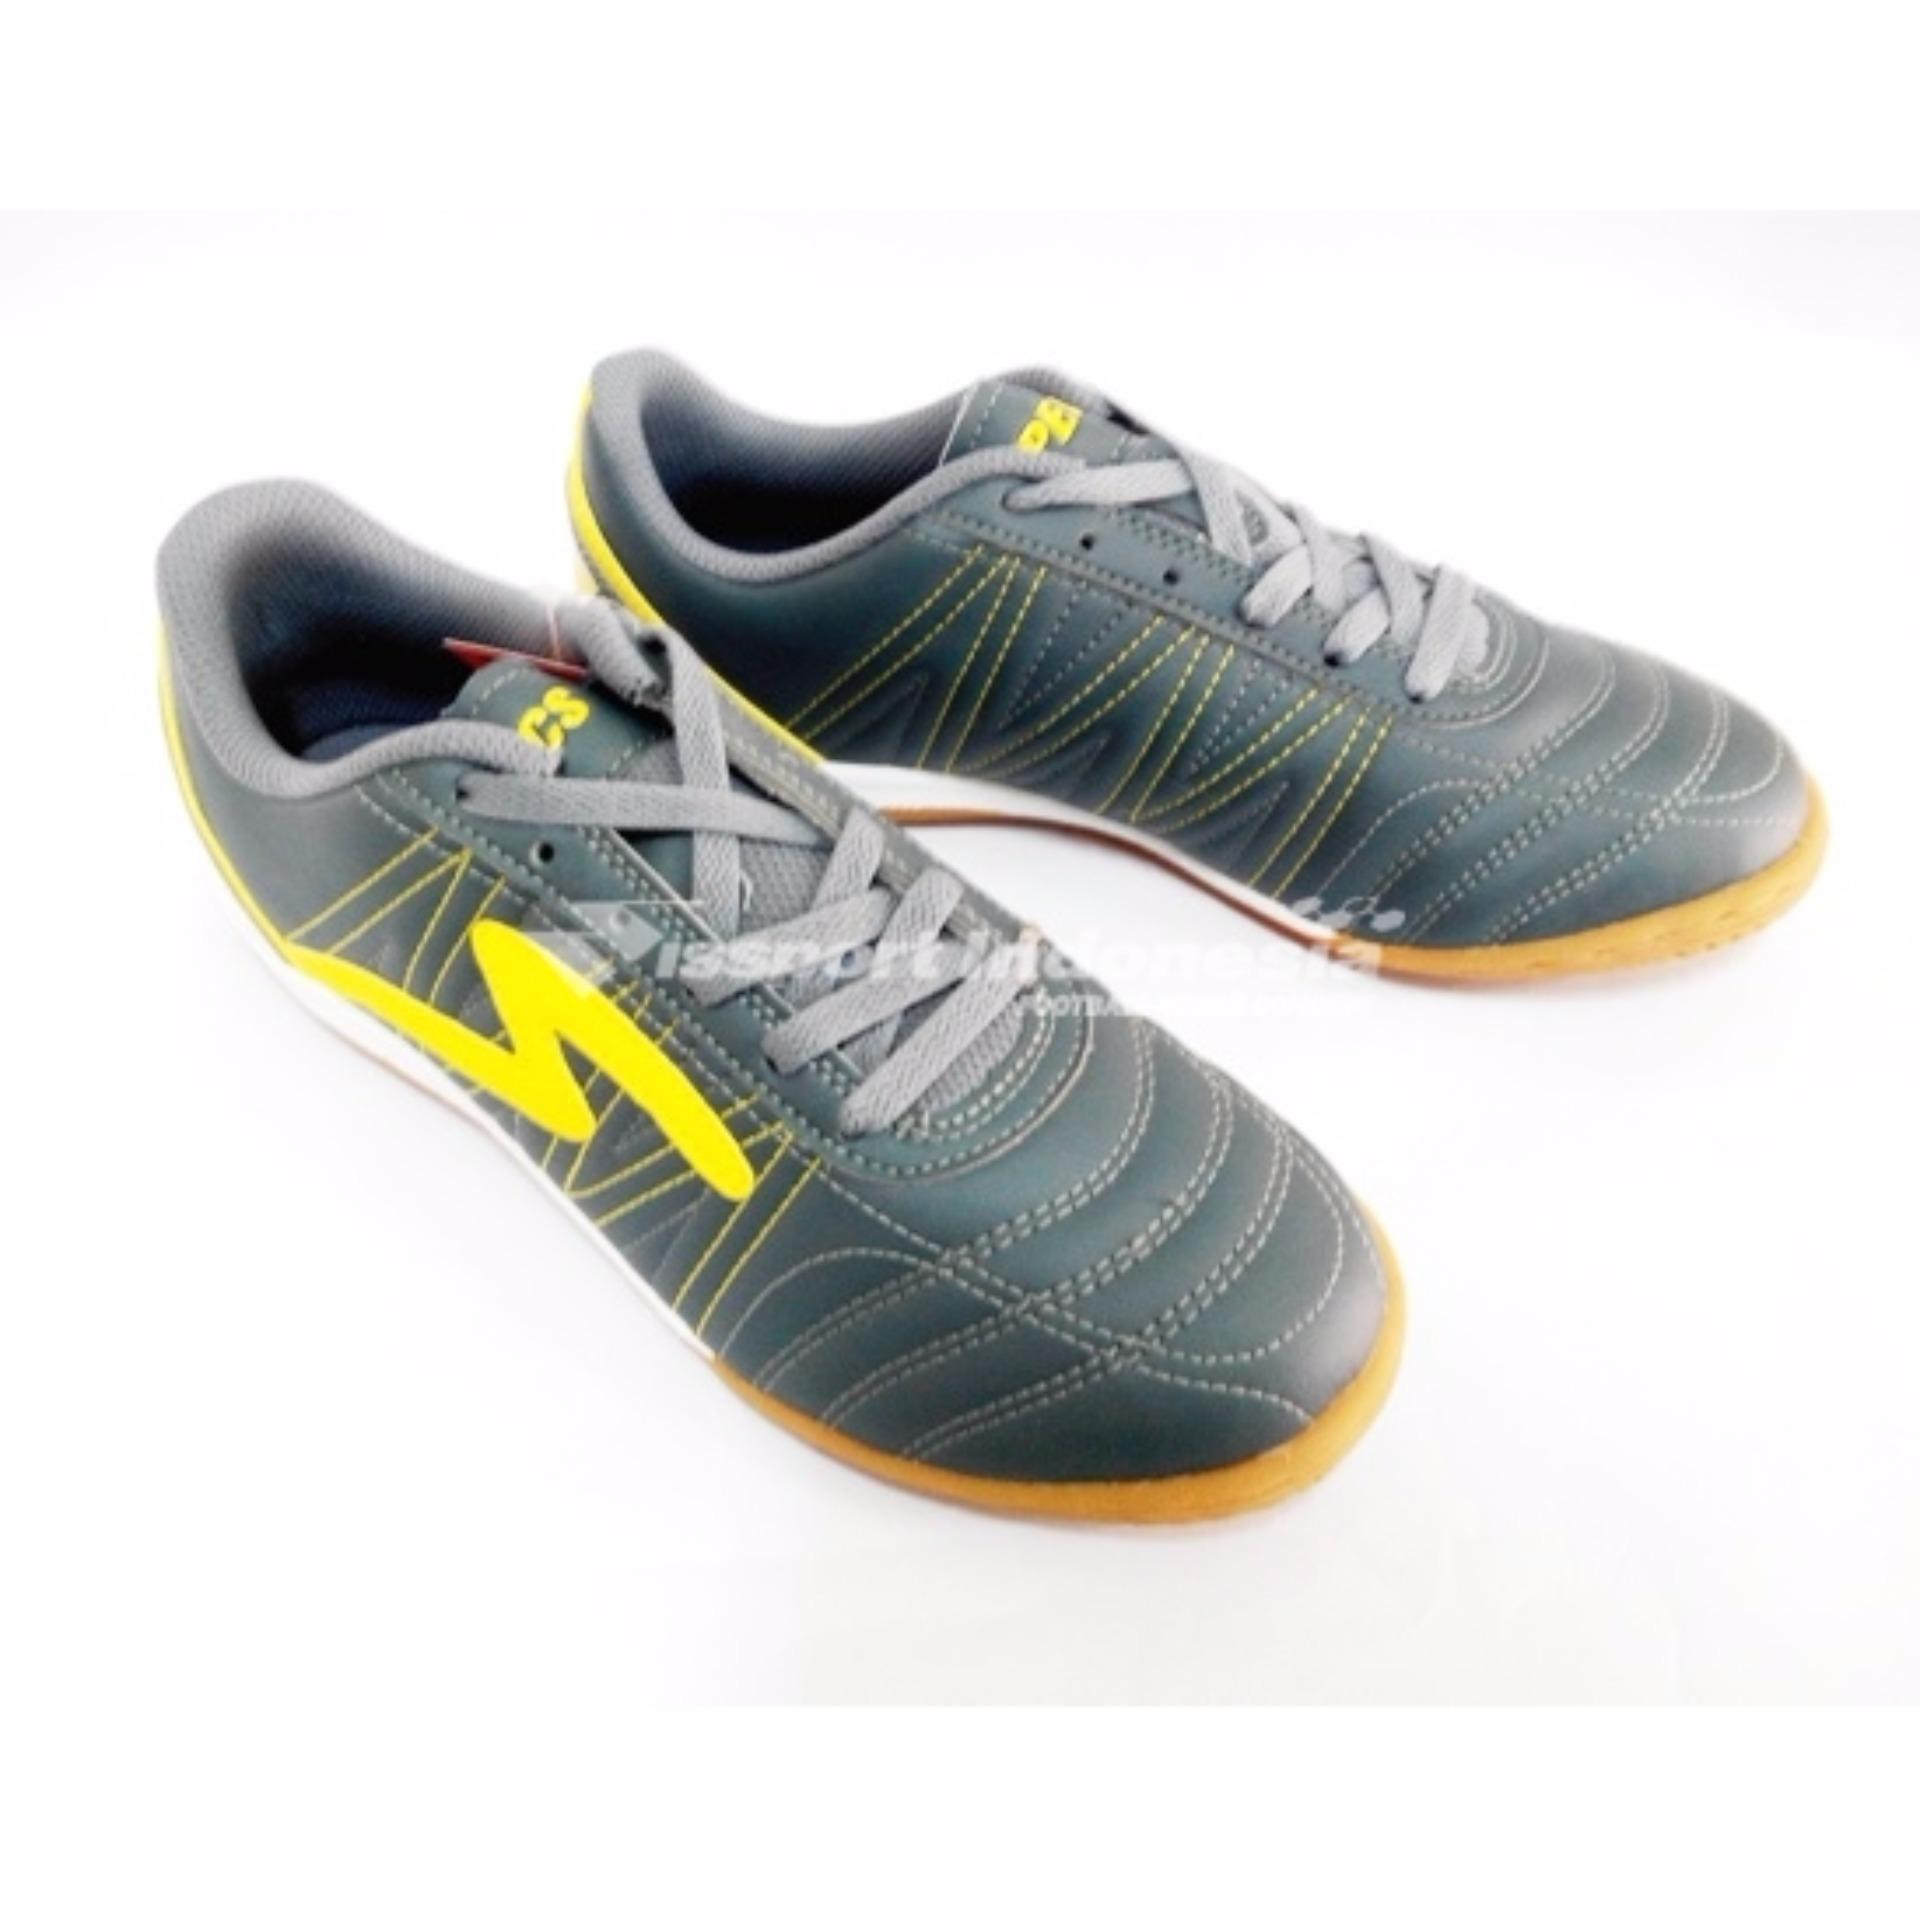 Specs Futsal Horus - Dark Charcoal Yellow